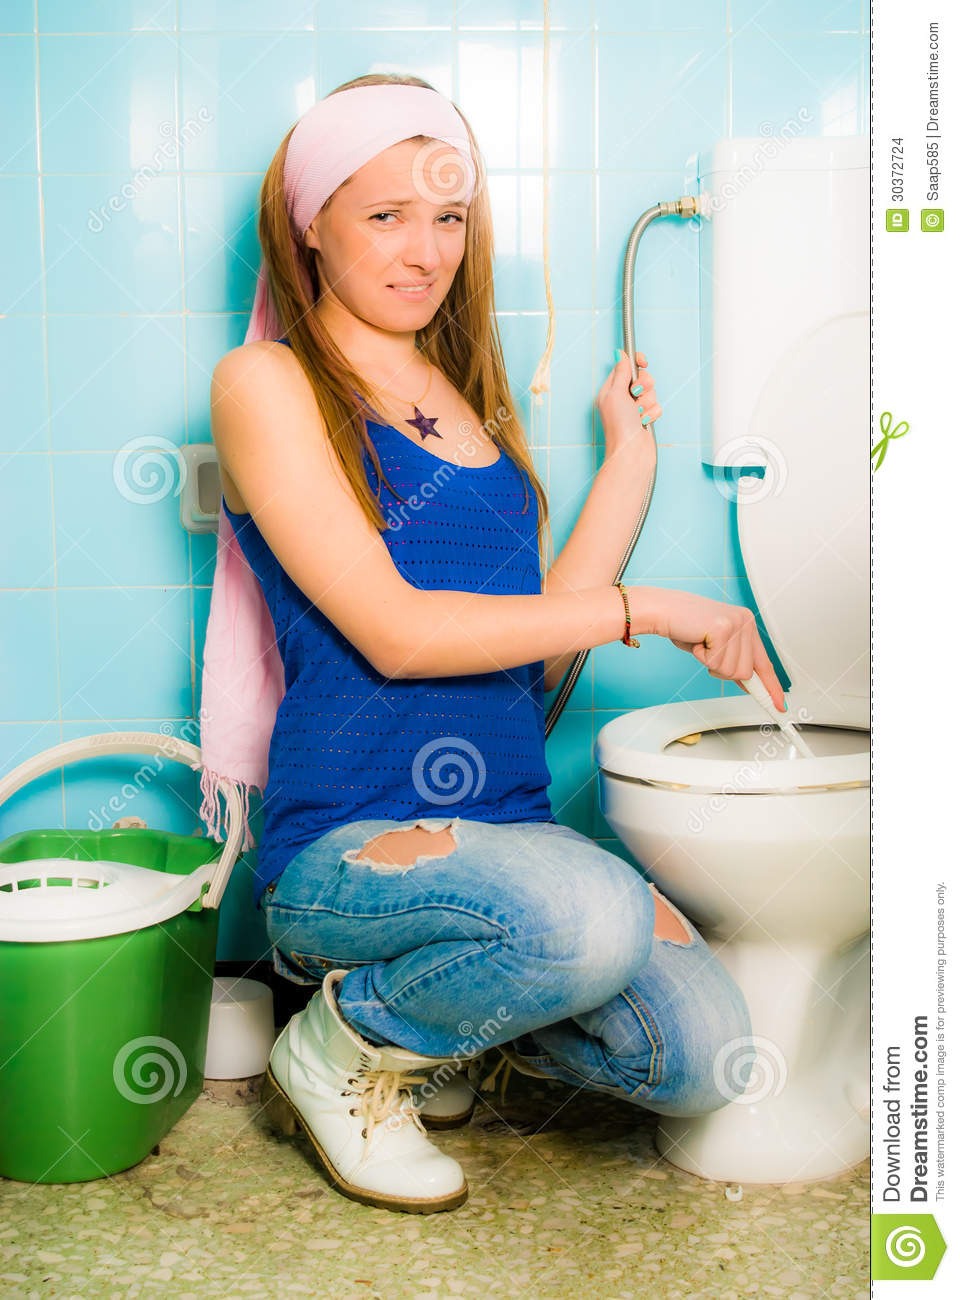 girl cleaning toilet seat stock photo image of female